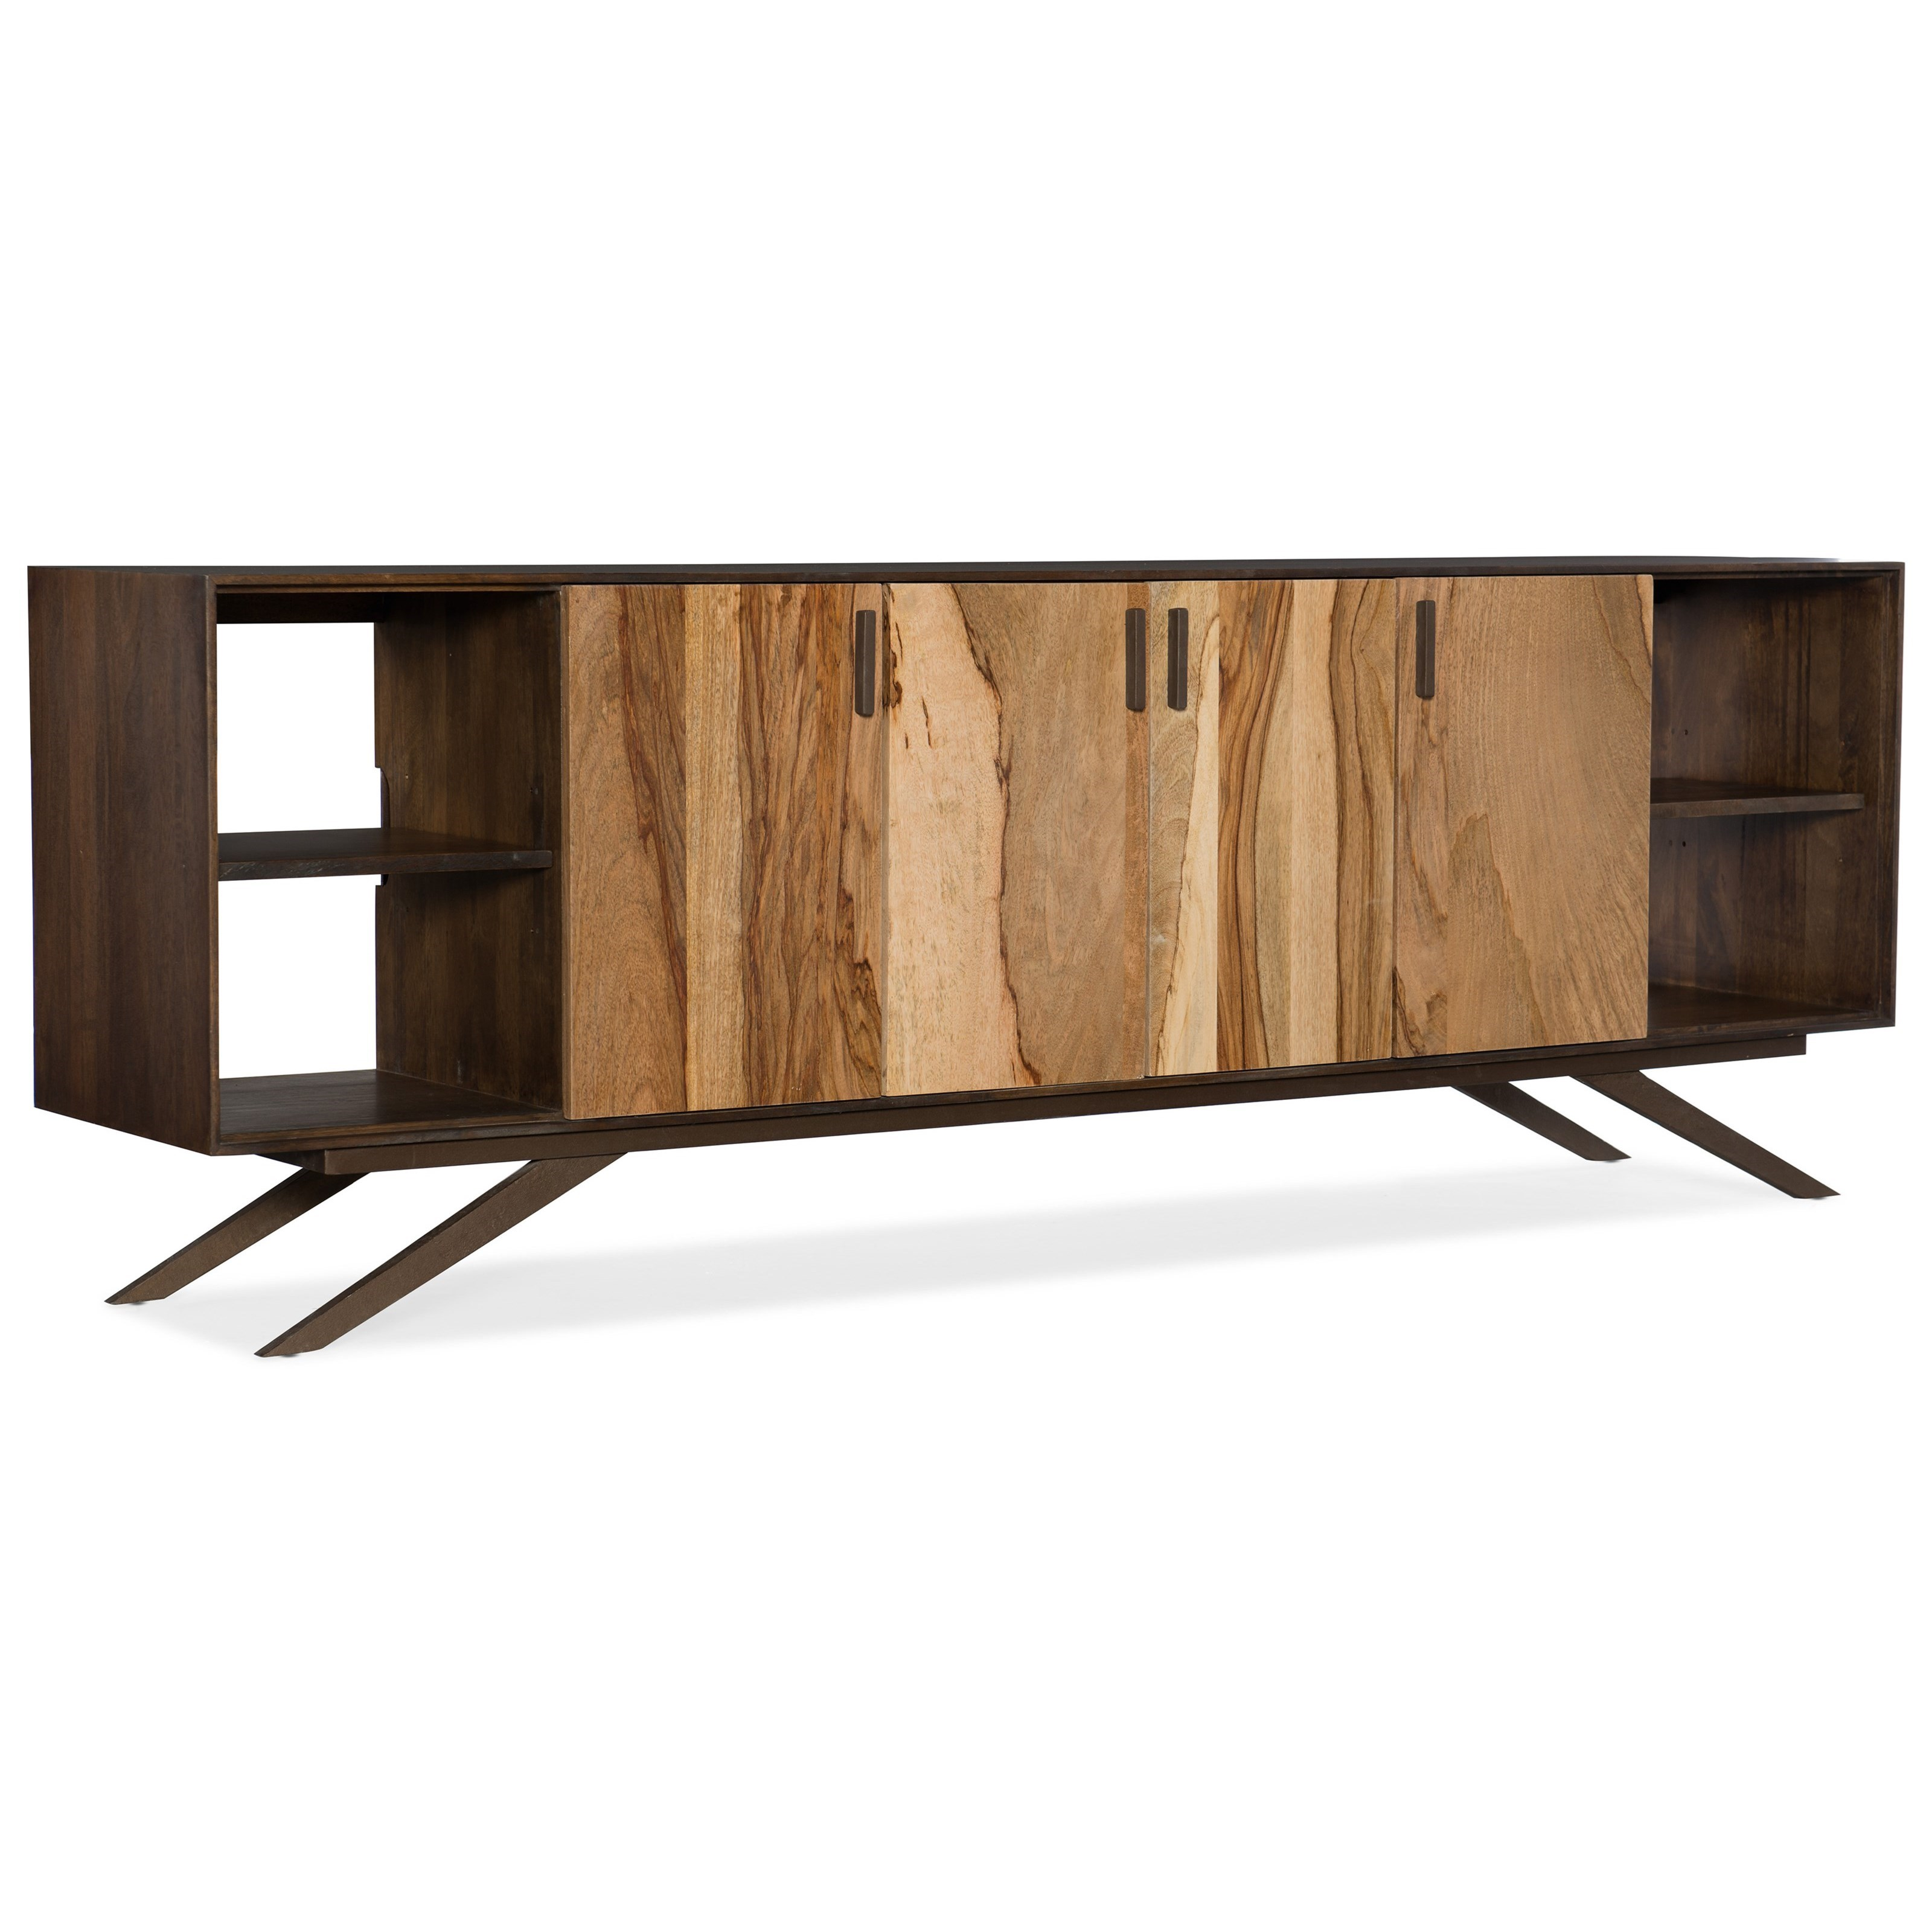 Hooker Furniture 5687-55 Shogun 78in Entertainment Console - Item Number: 5687-55478-MWD